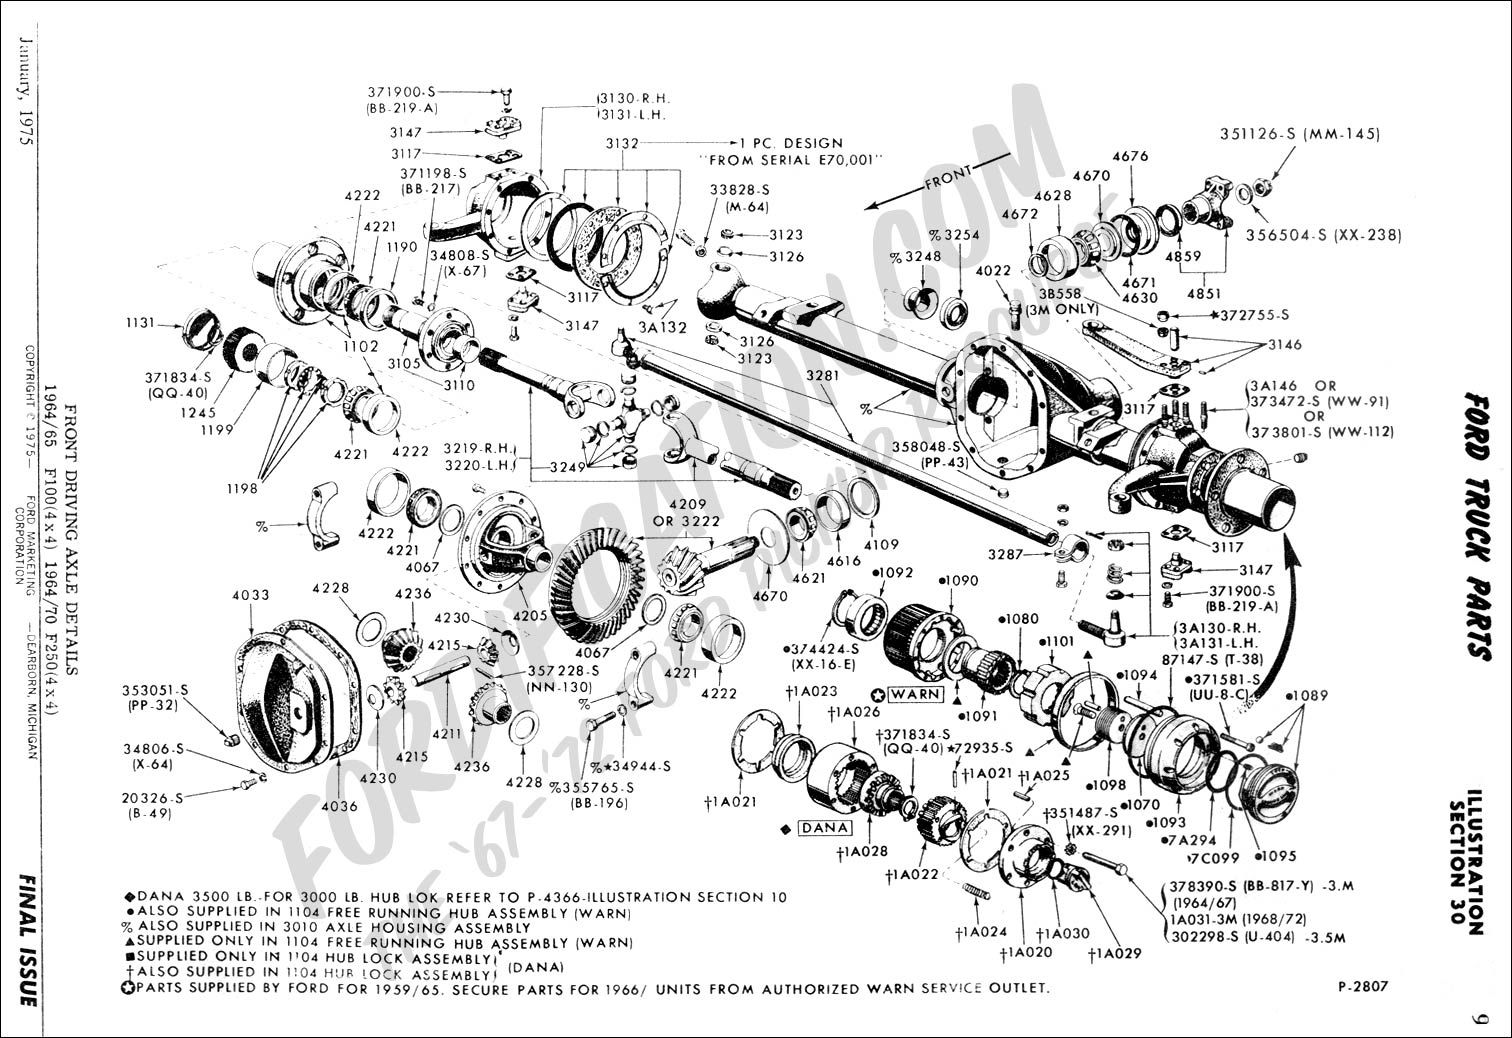 345088390176179432 on 2002 chrysler sebring wiring diagram